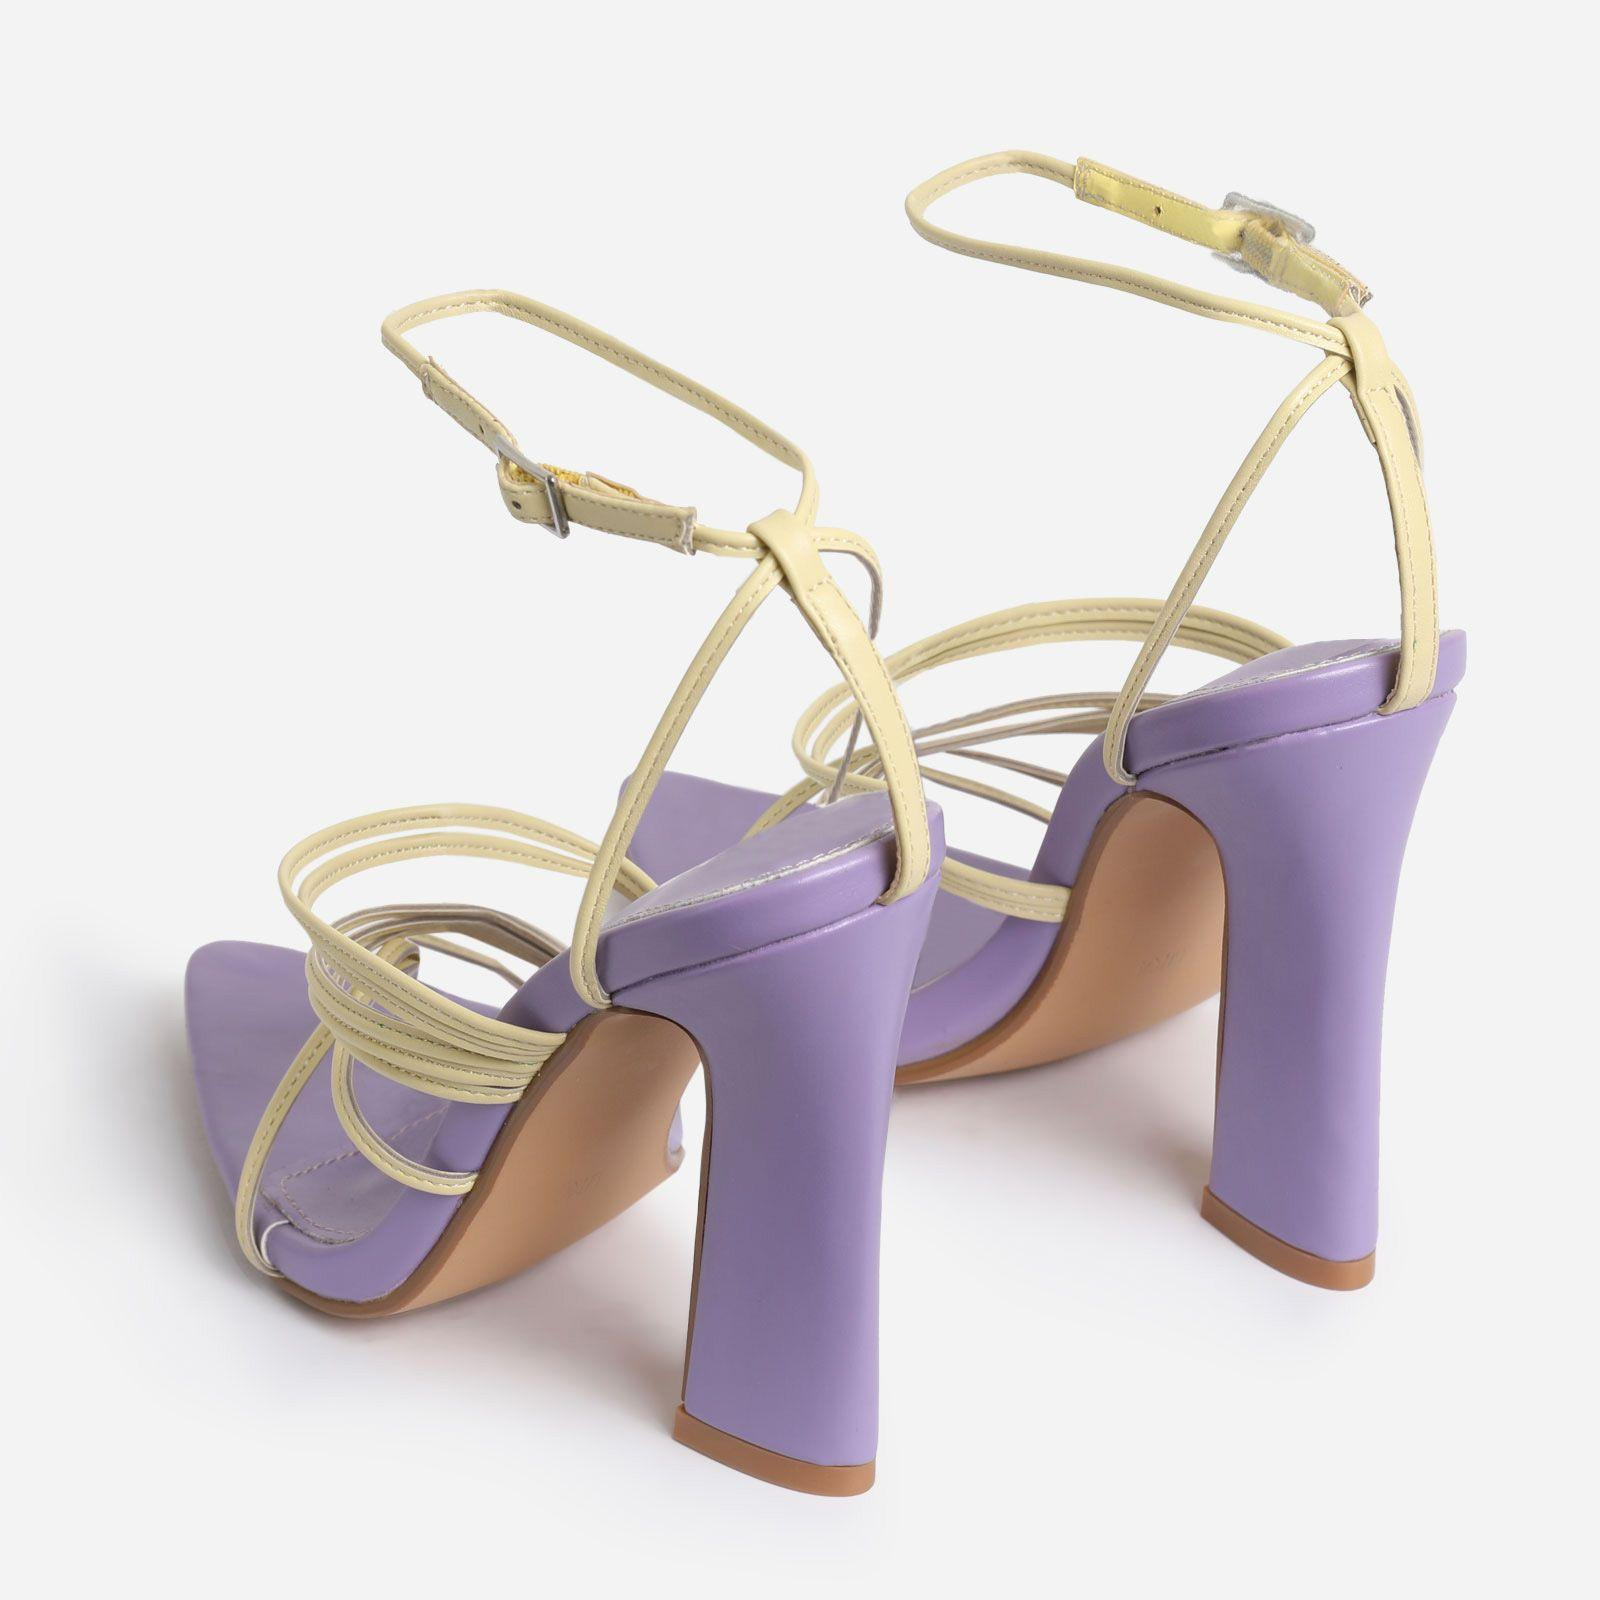 Scout Pointed Toe Yellow Strappy Flared Block Heel In Lilac Purple Faux Leather Image 3